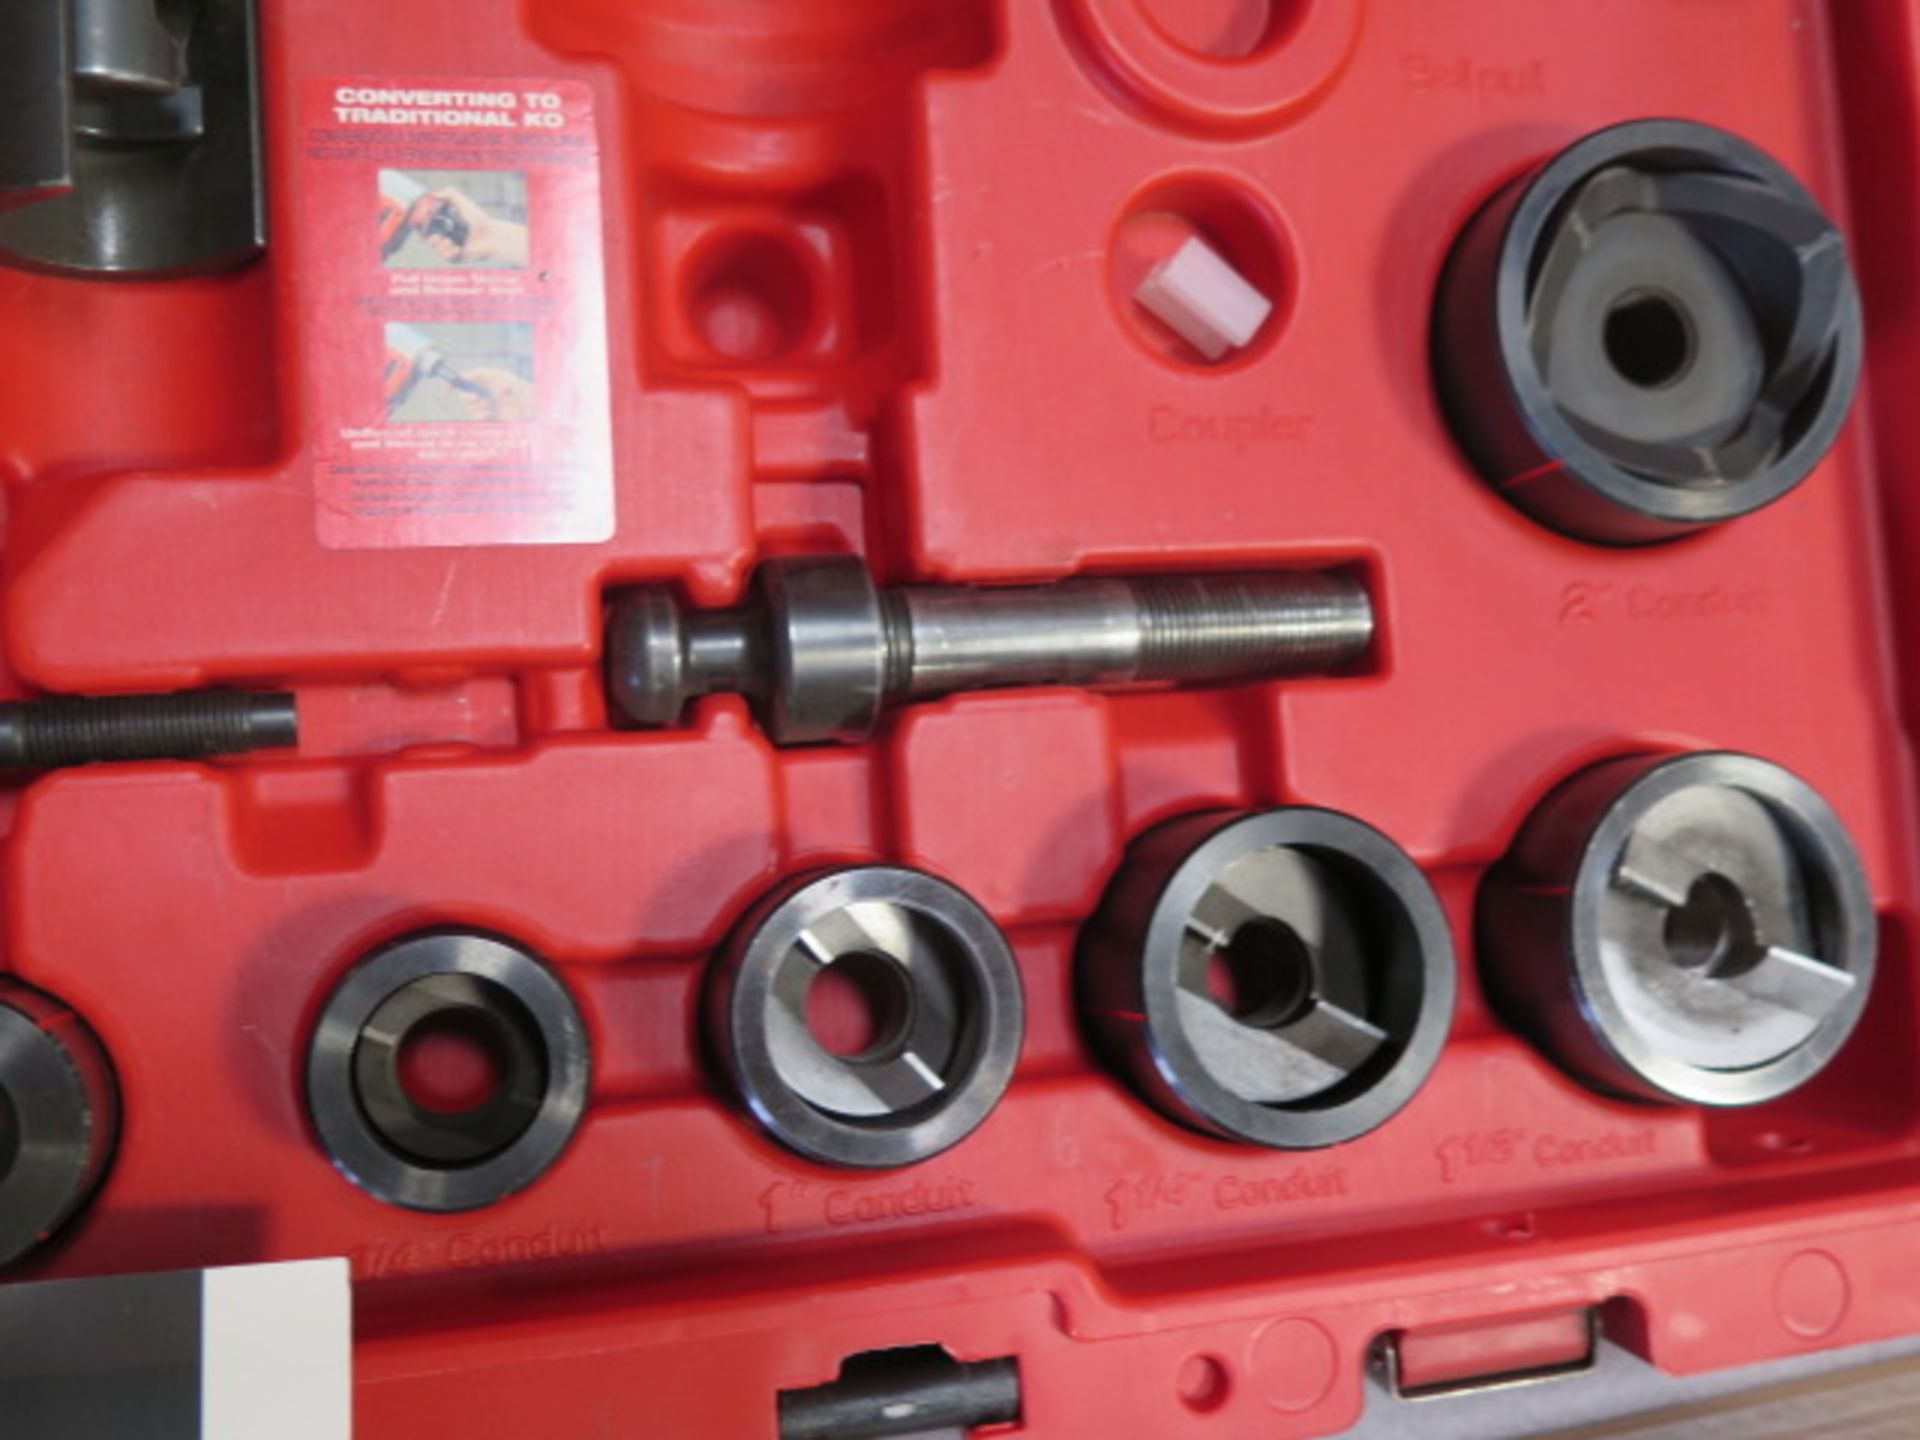 Milwaukee 18 Volt 10-Ton Knockout Tool Punch Set (SOLD AS-IS - NO WARRANTY) - Image 4 of 6